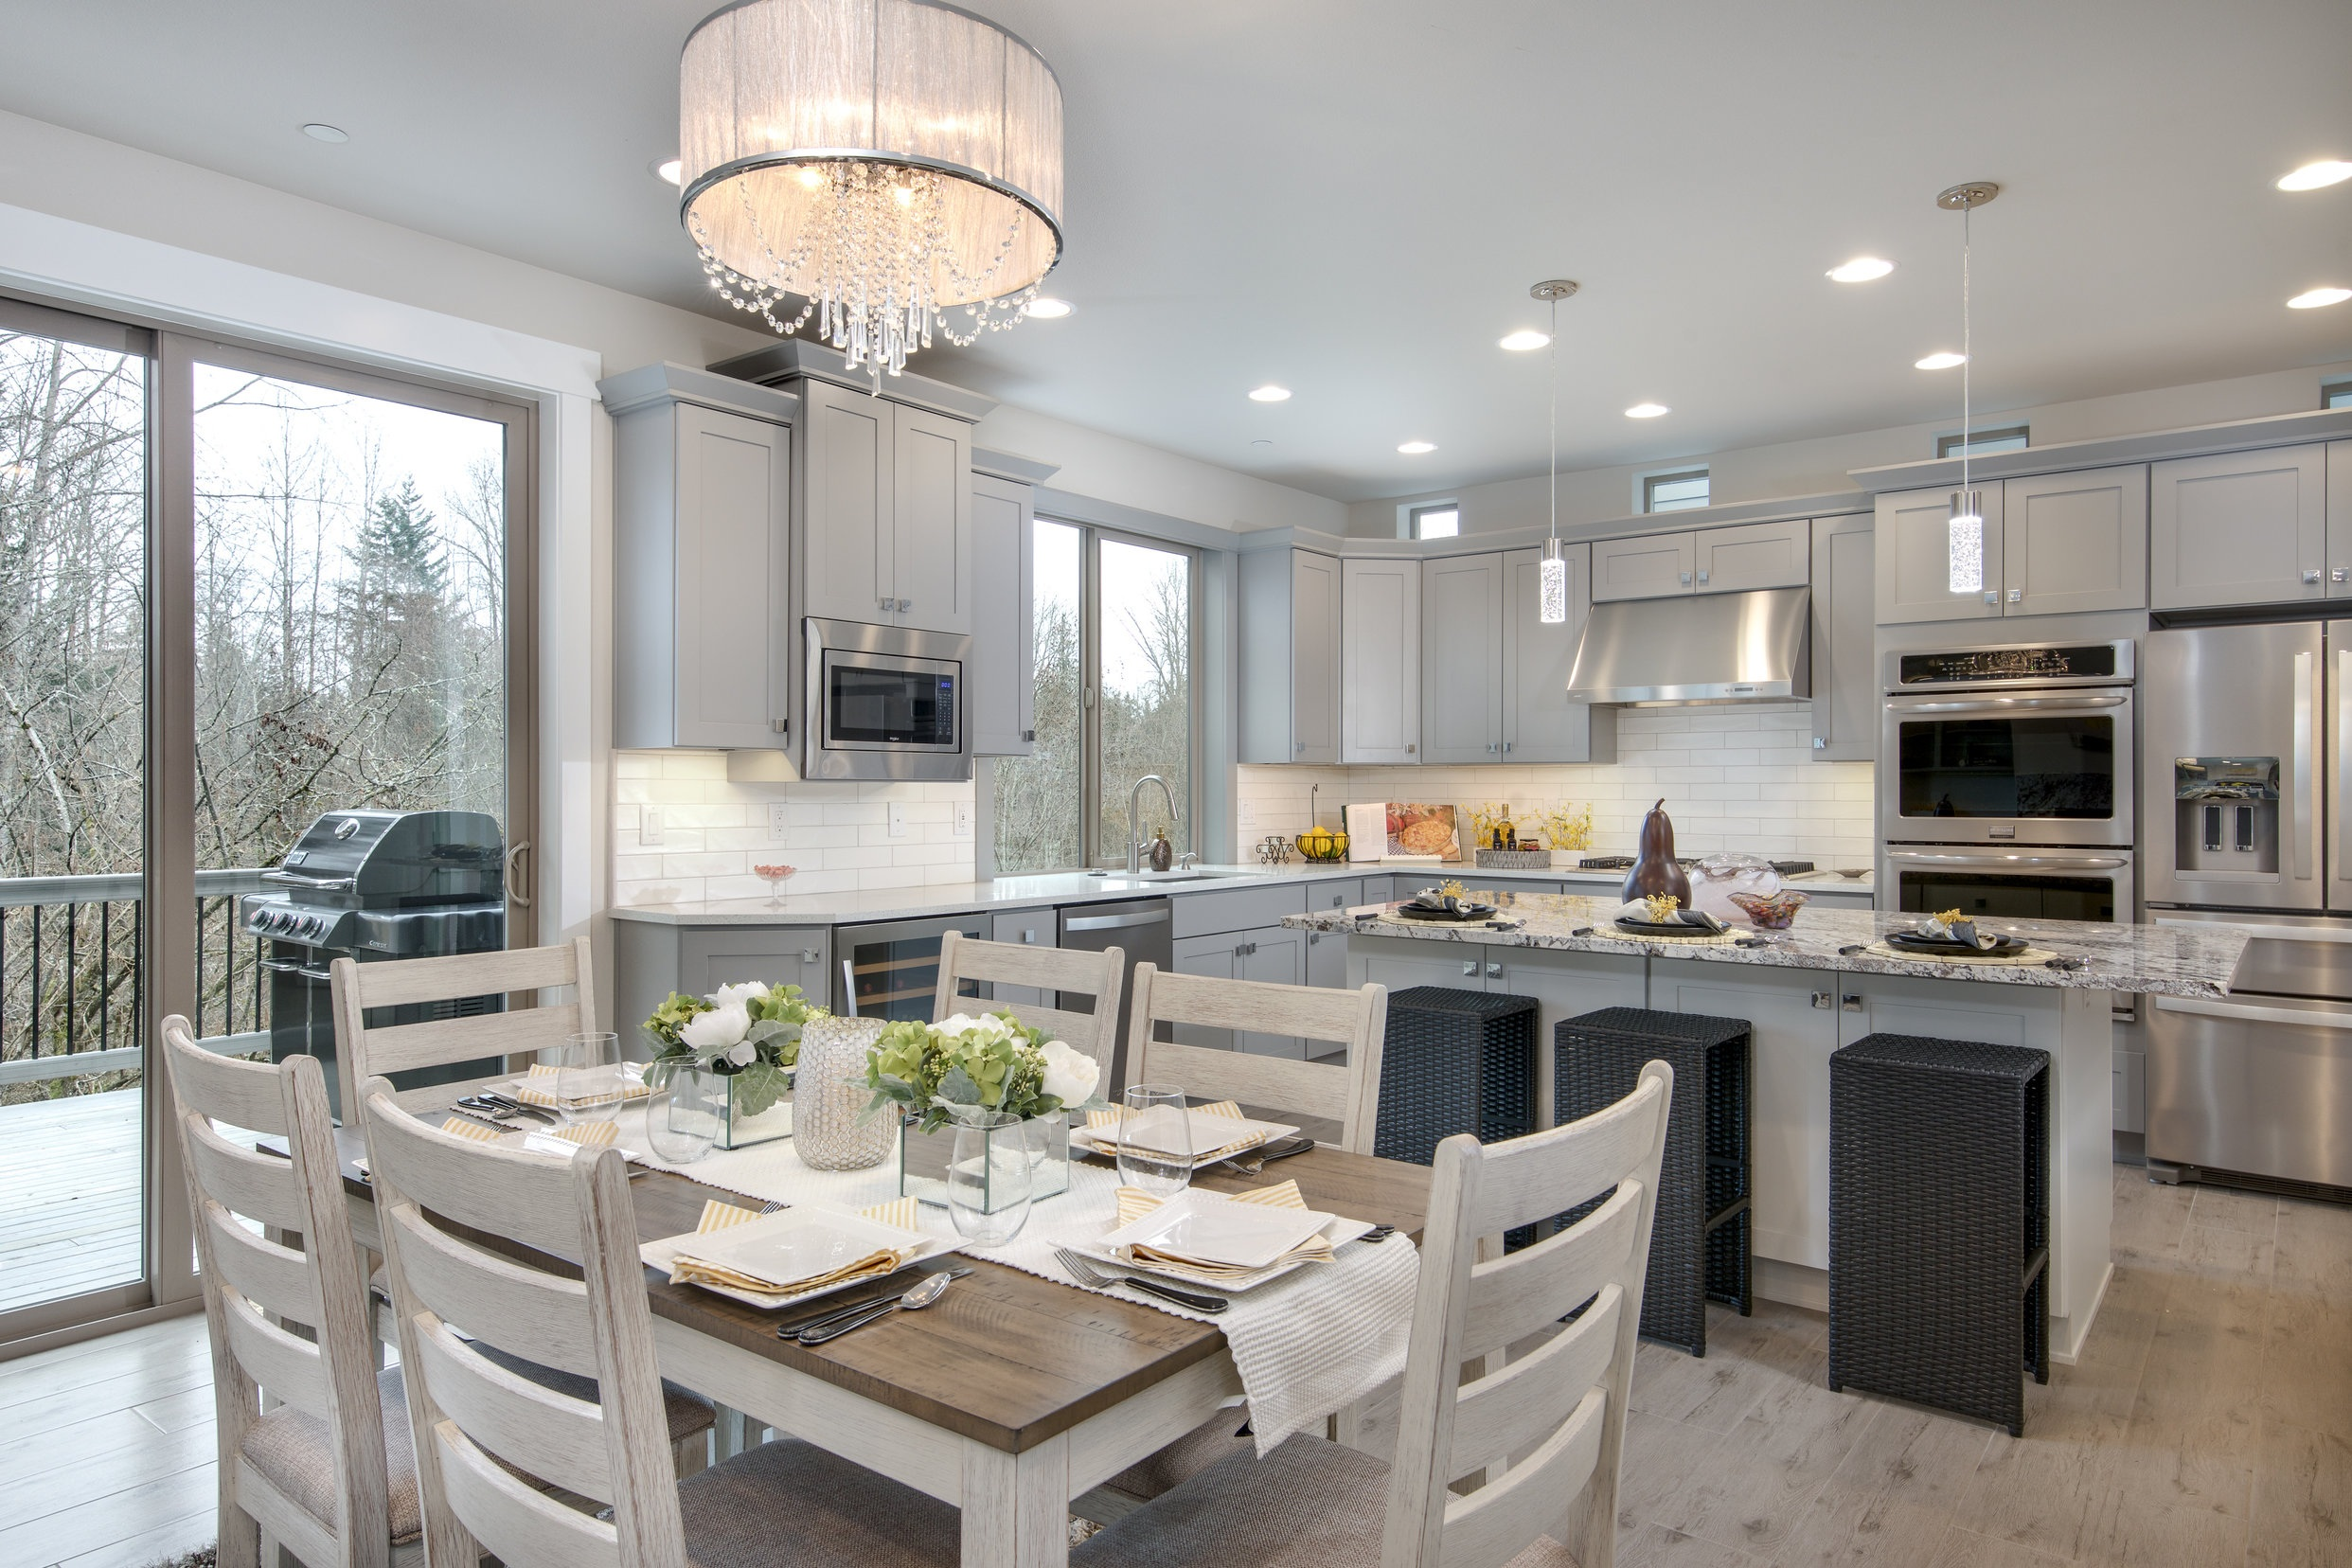 Blueberry Creek Reserve Kitchen.jpg